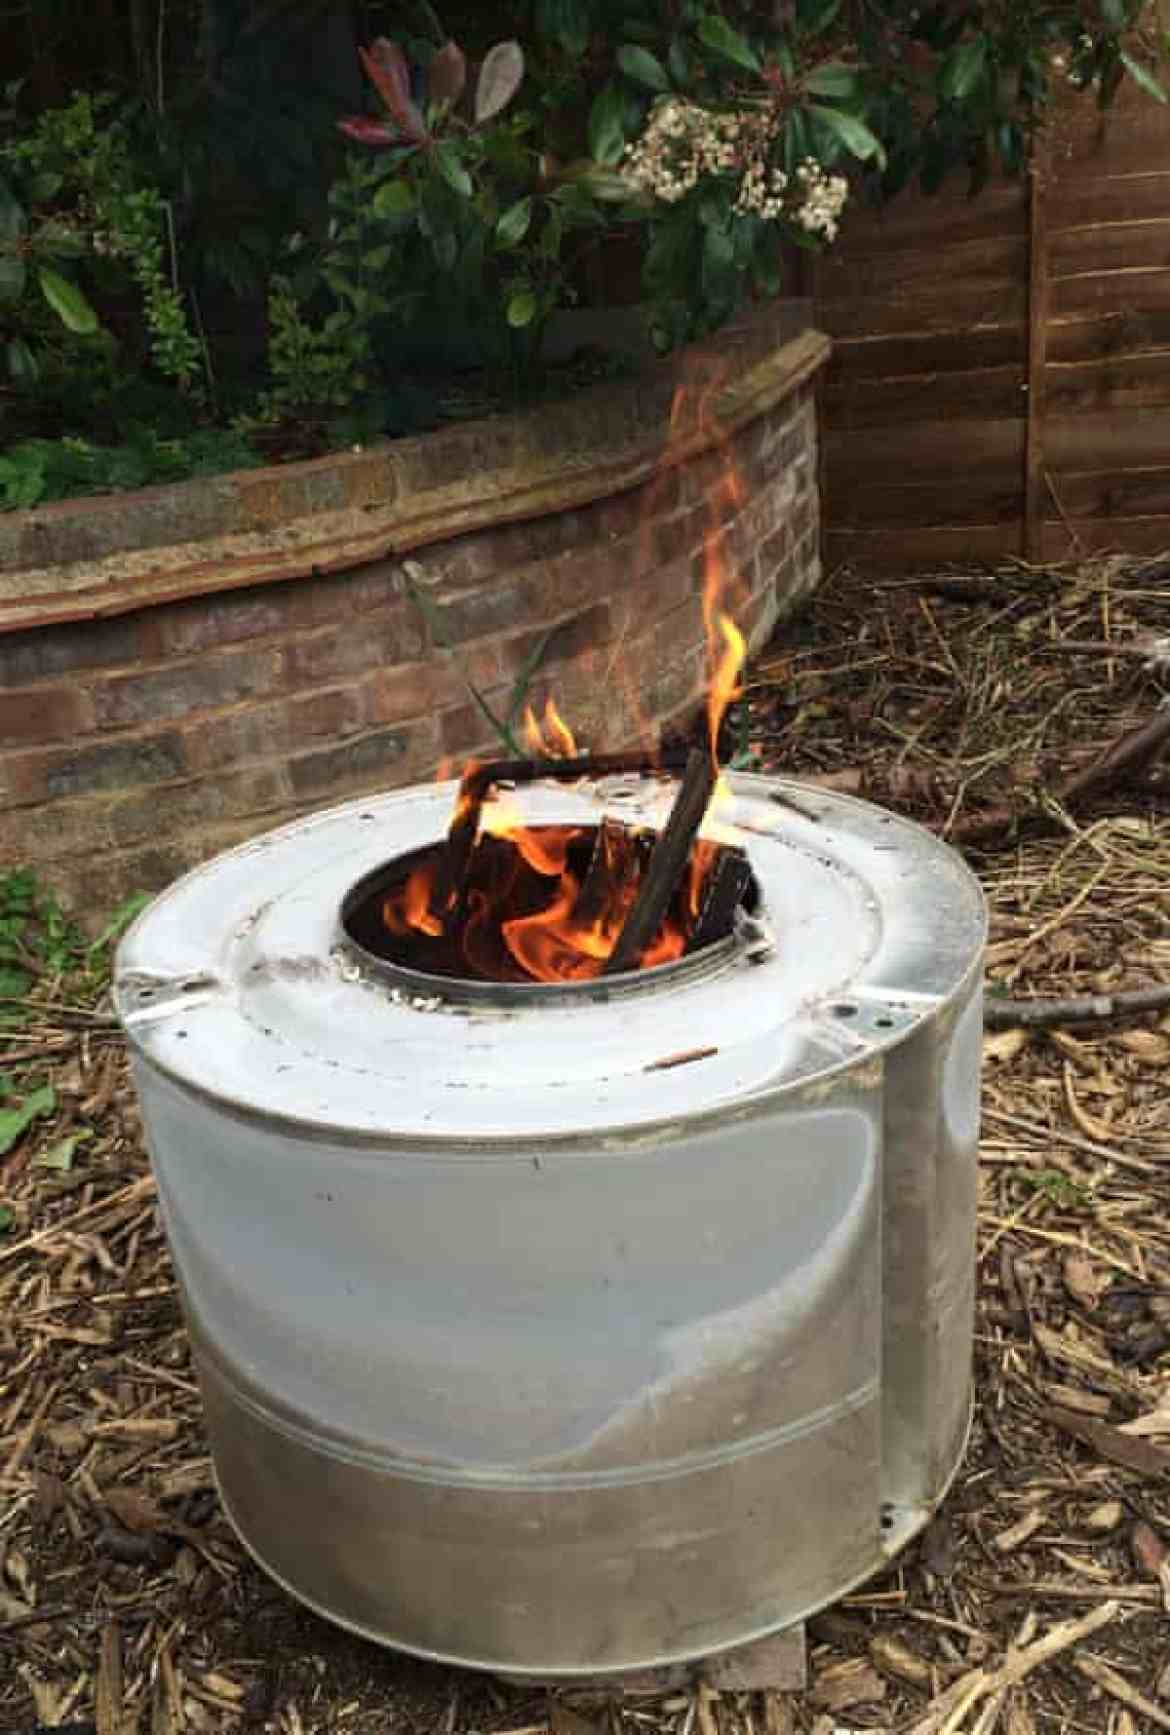 A dryer drum used as a garden incinerator.